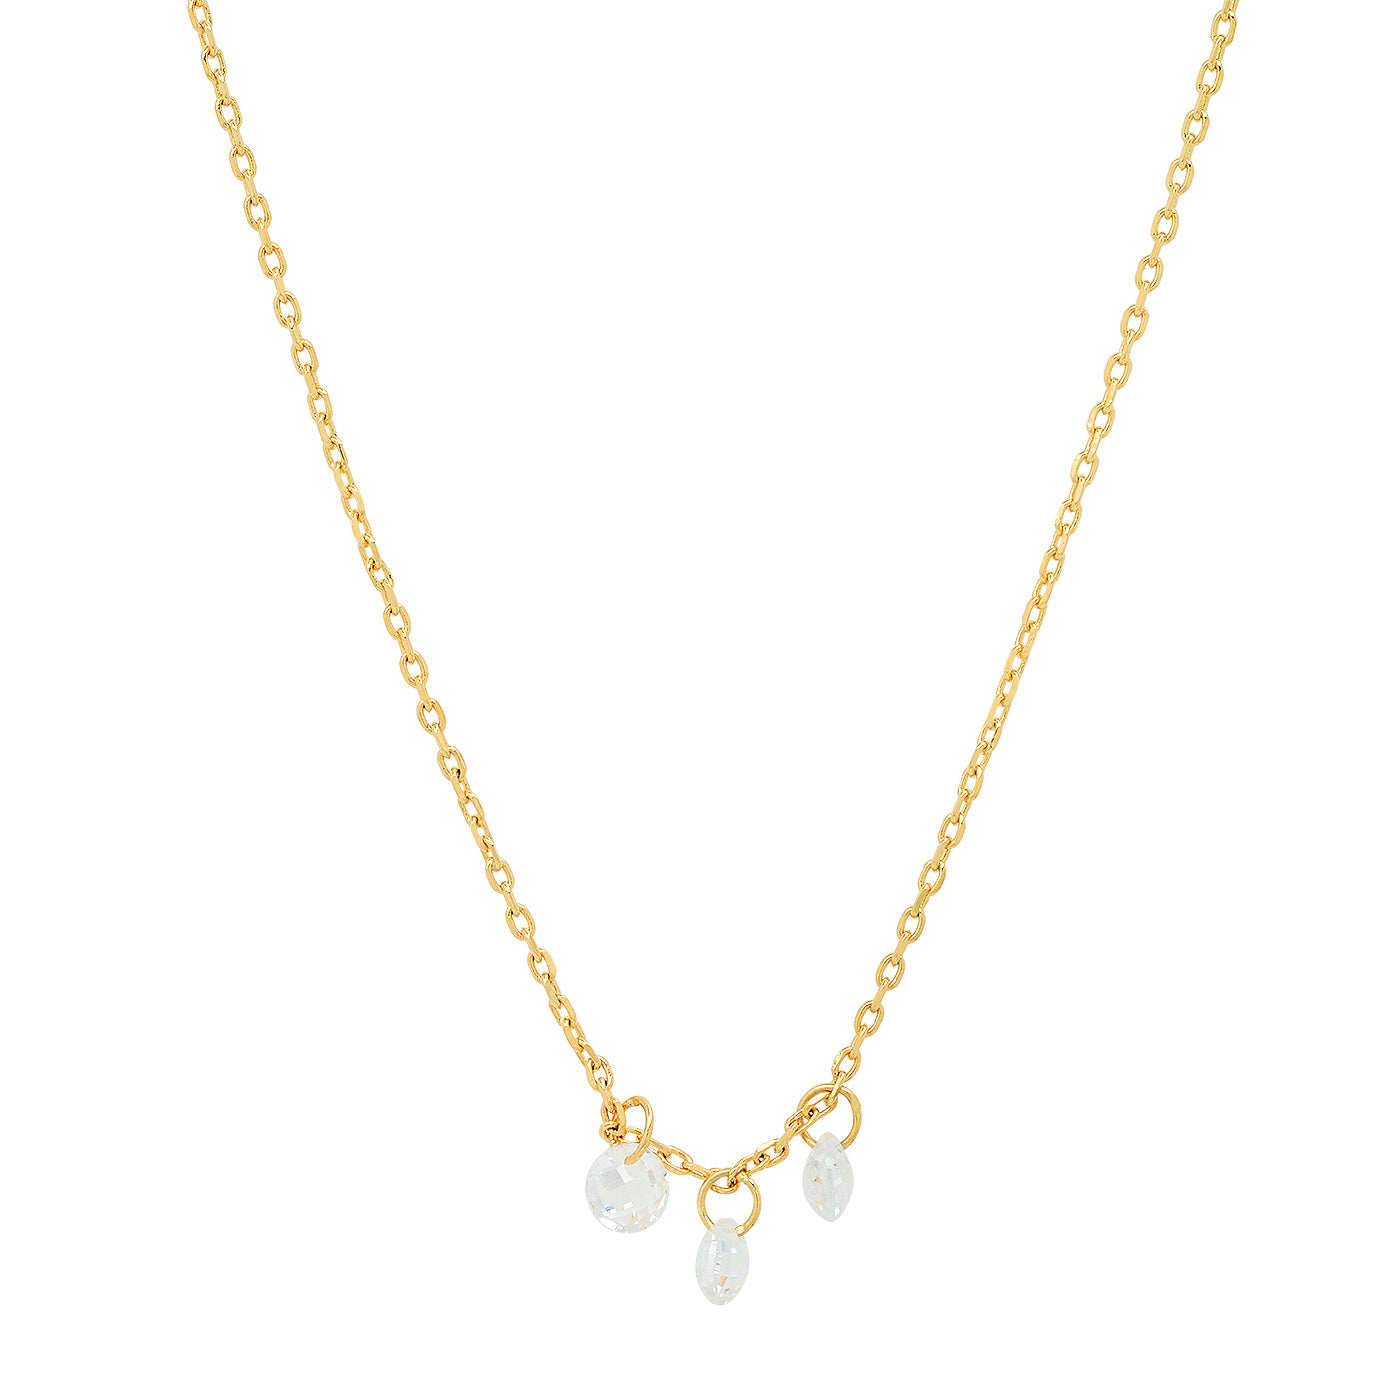 Tai - Necklace with Three Floating CZ's (gold)